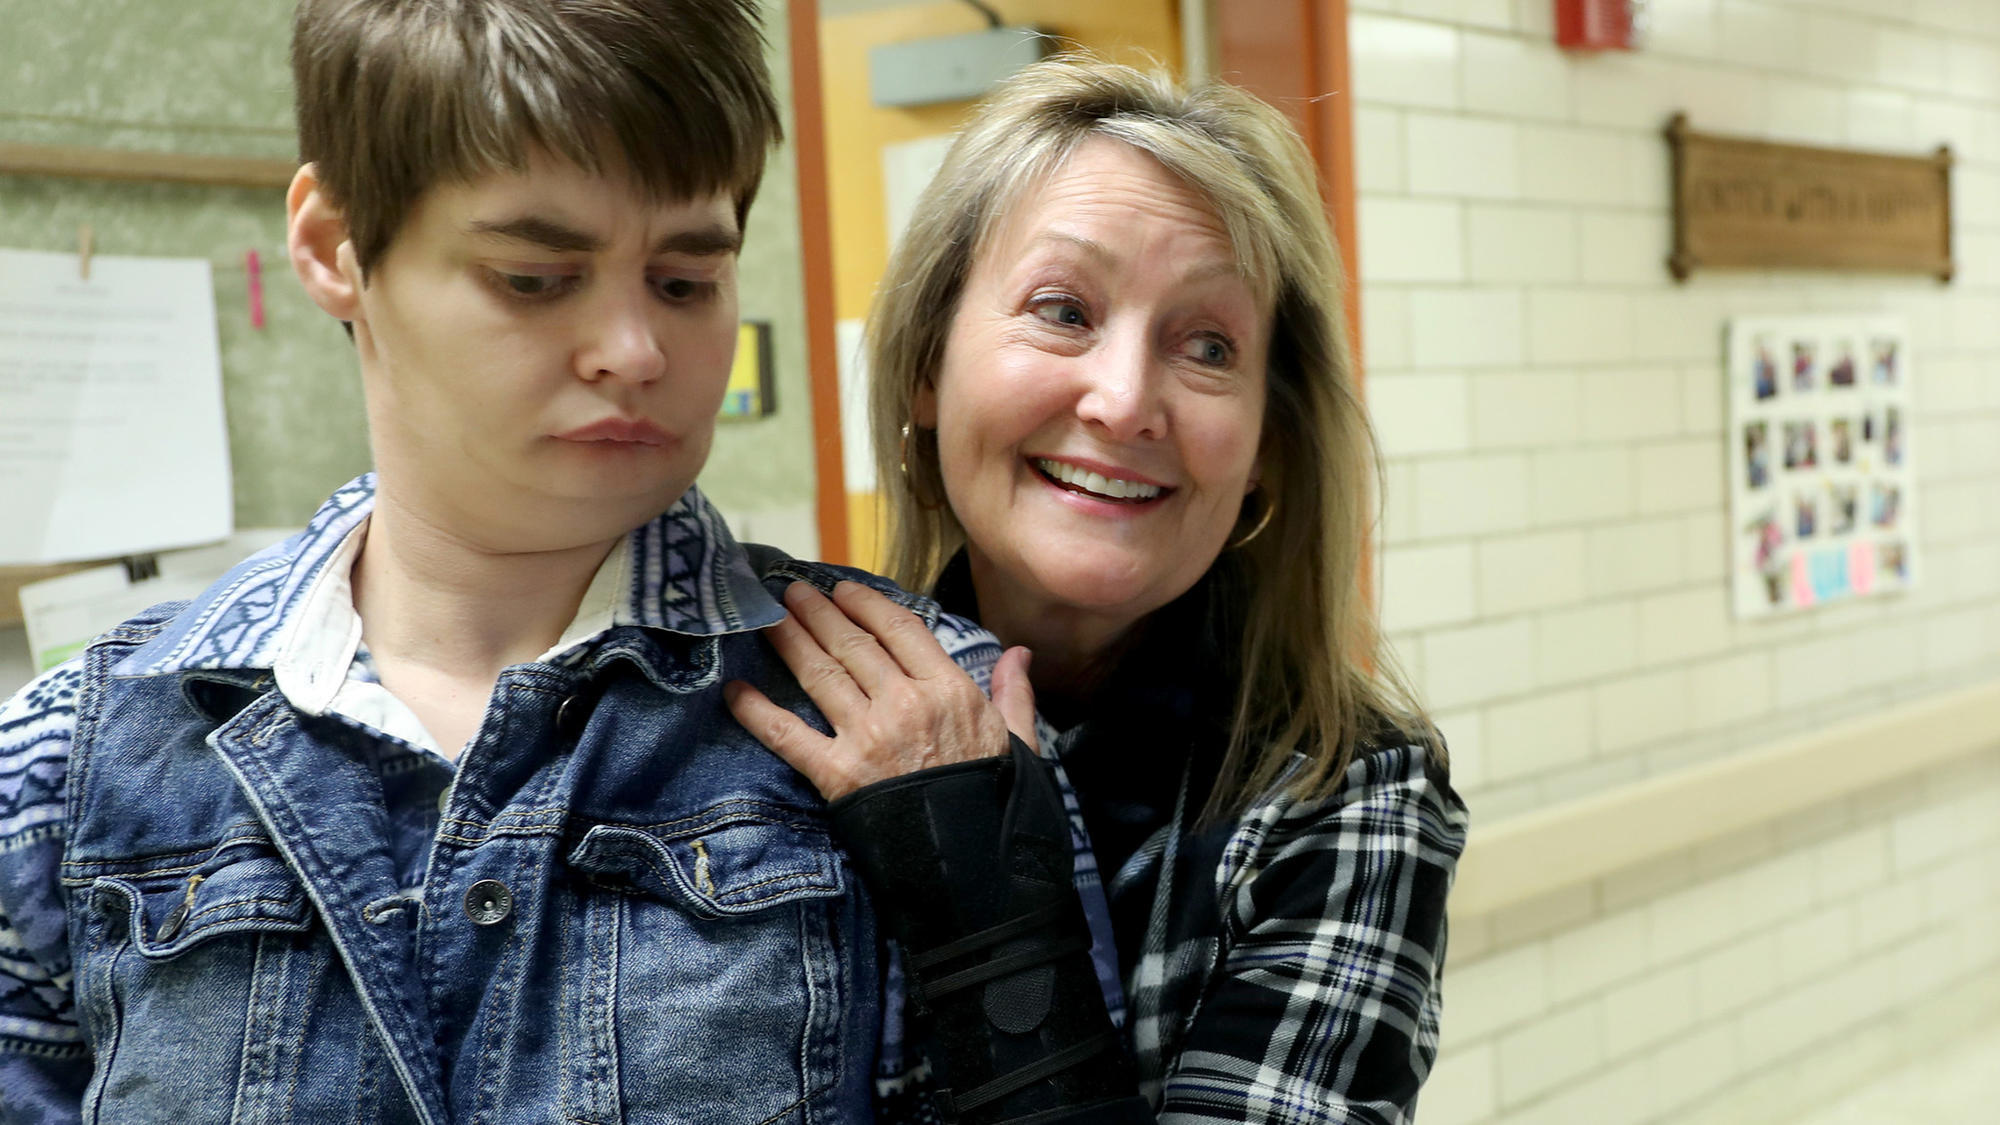 With you illinois developmentally disabled young adult facilities can not